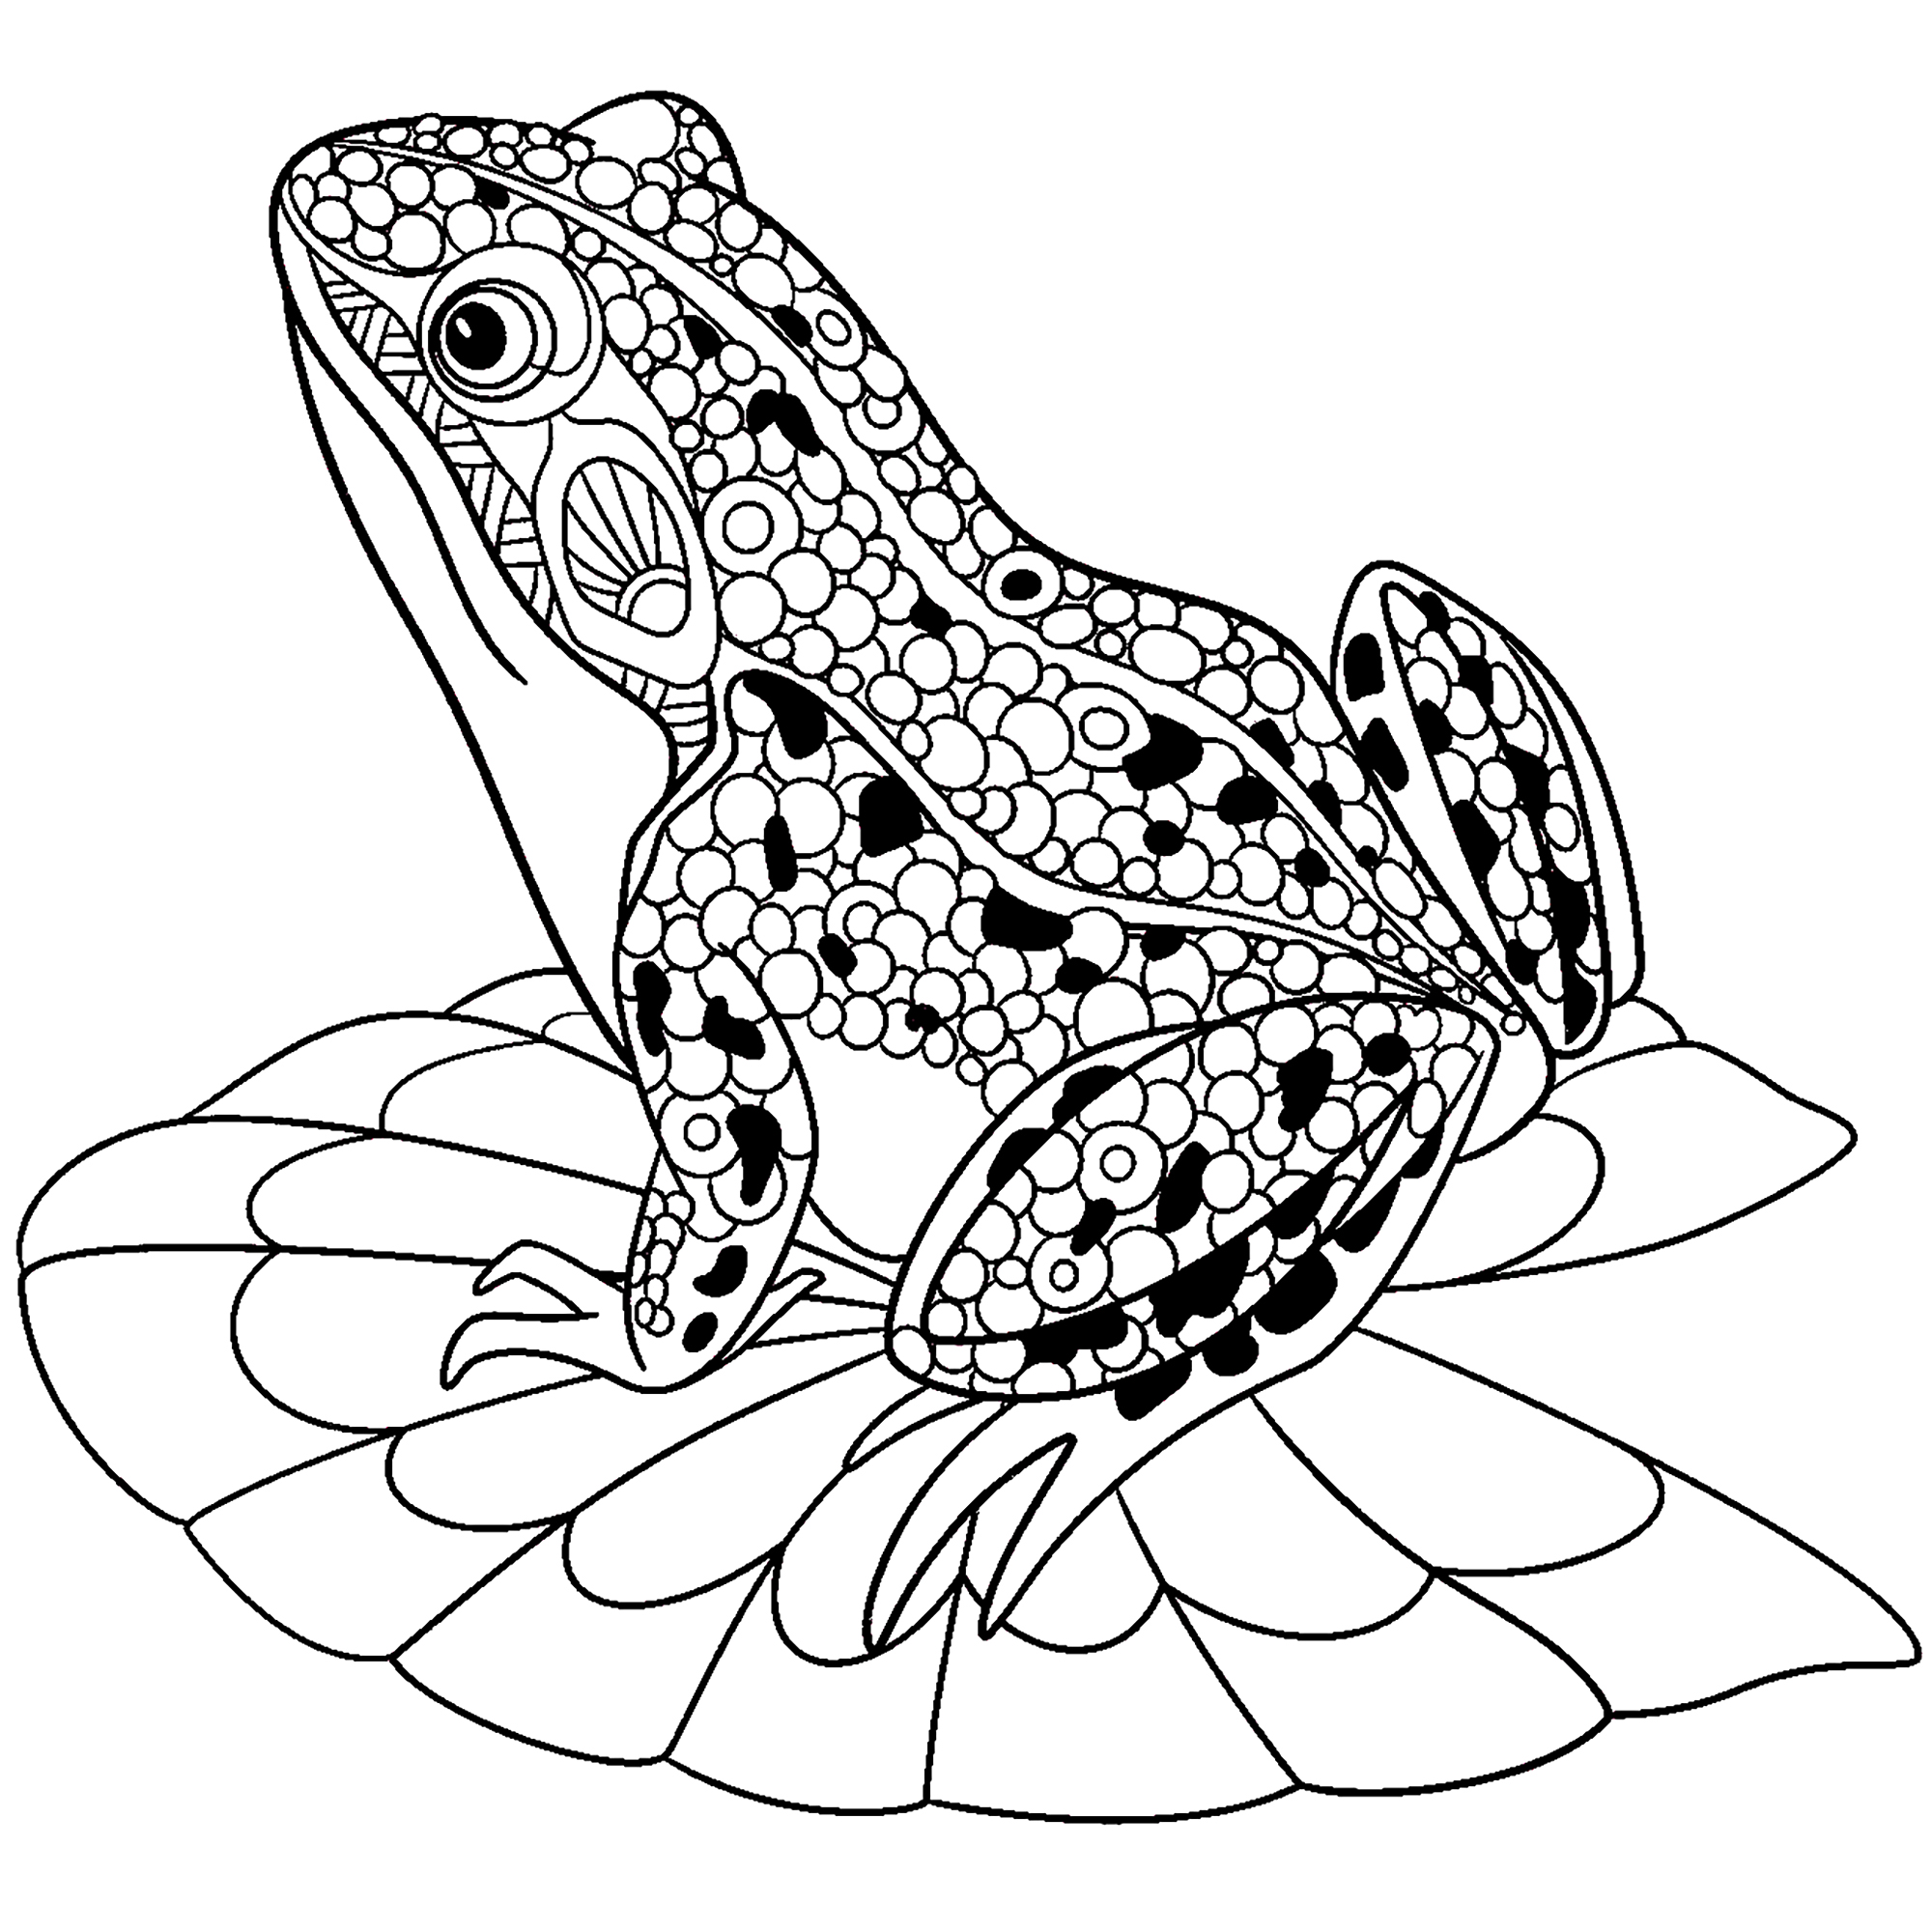 coloring frog outline images frogs free to color for children frogs kids coloring pages outline coloring frog images